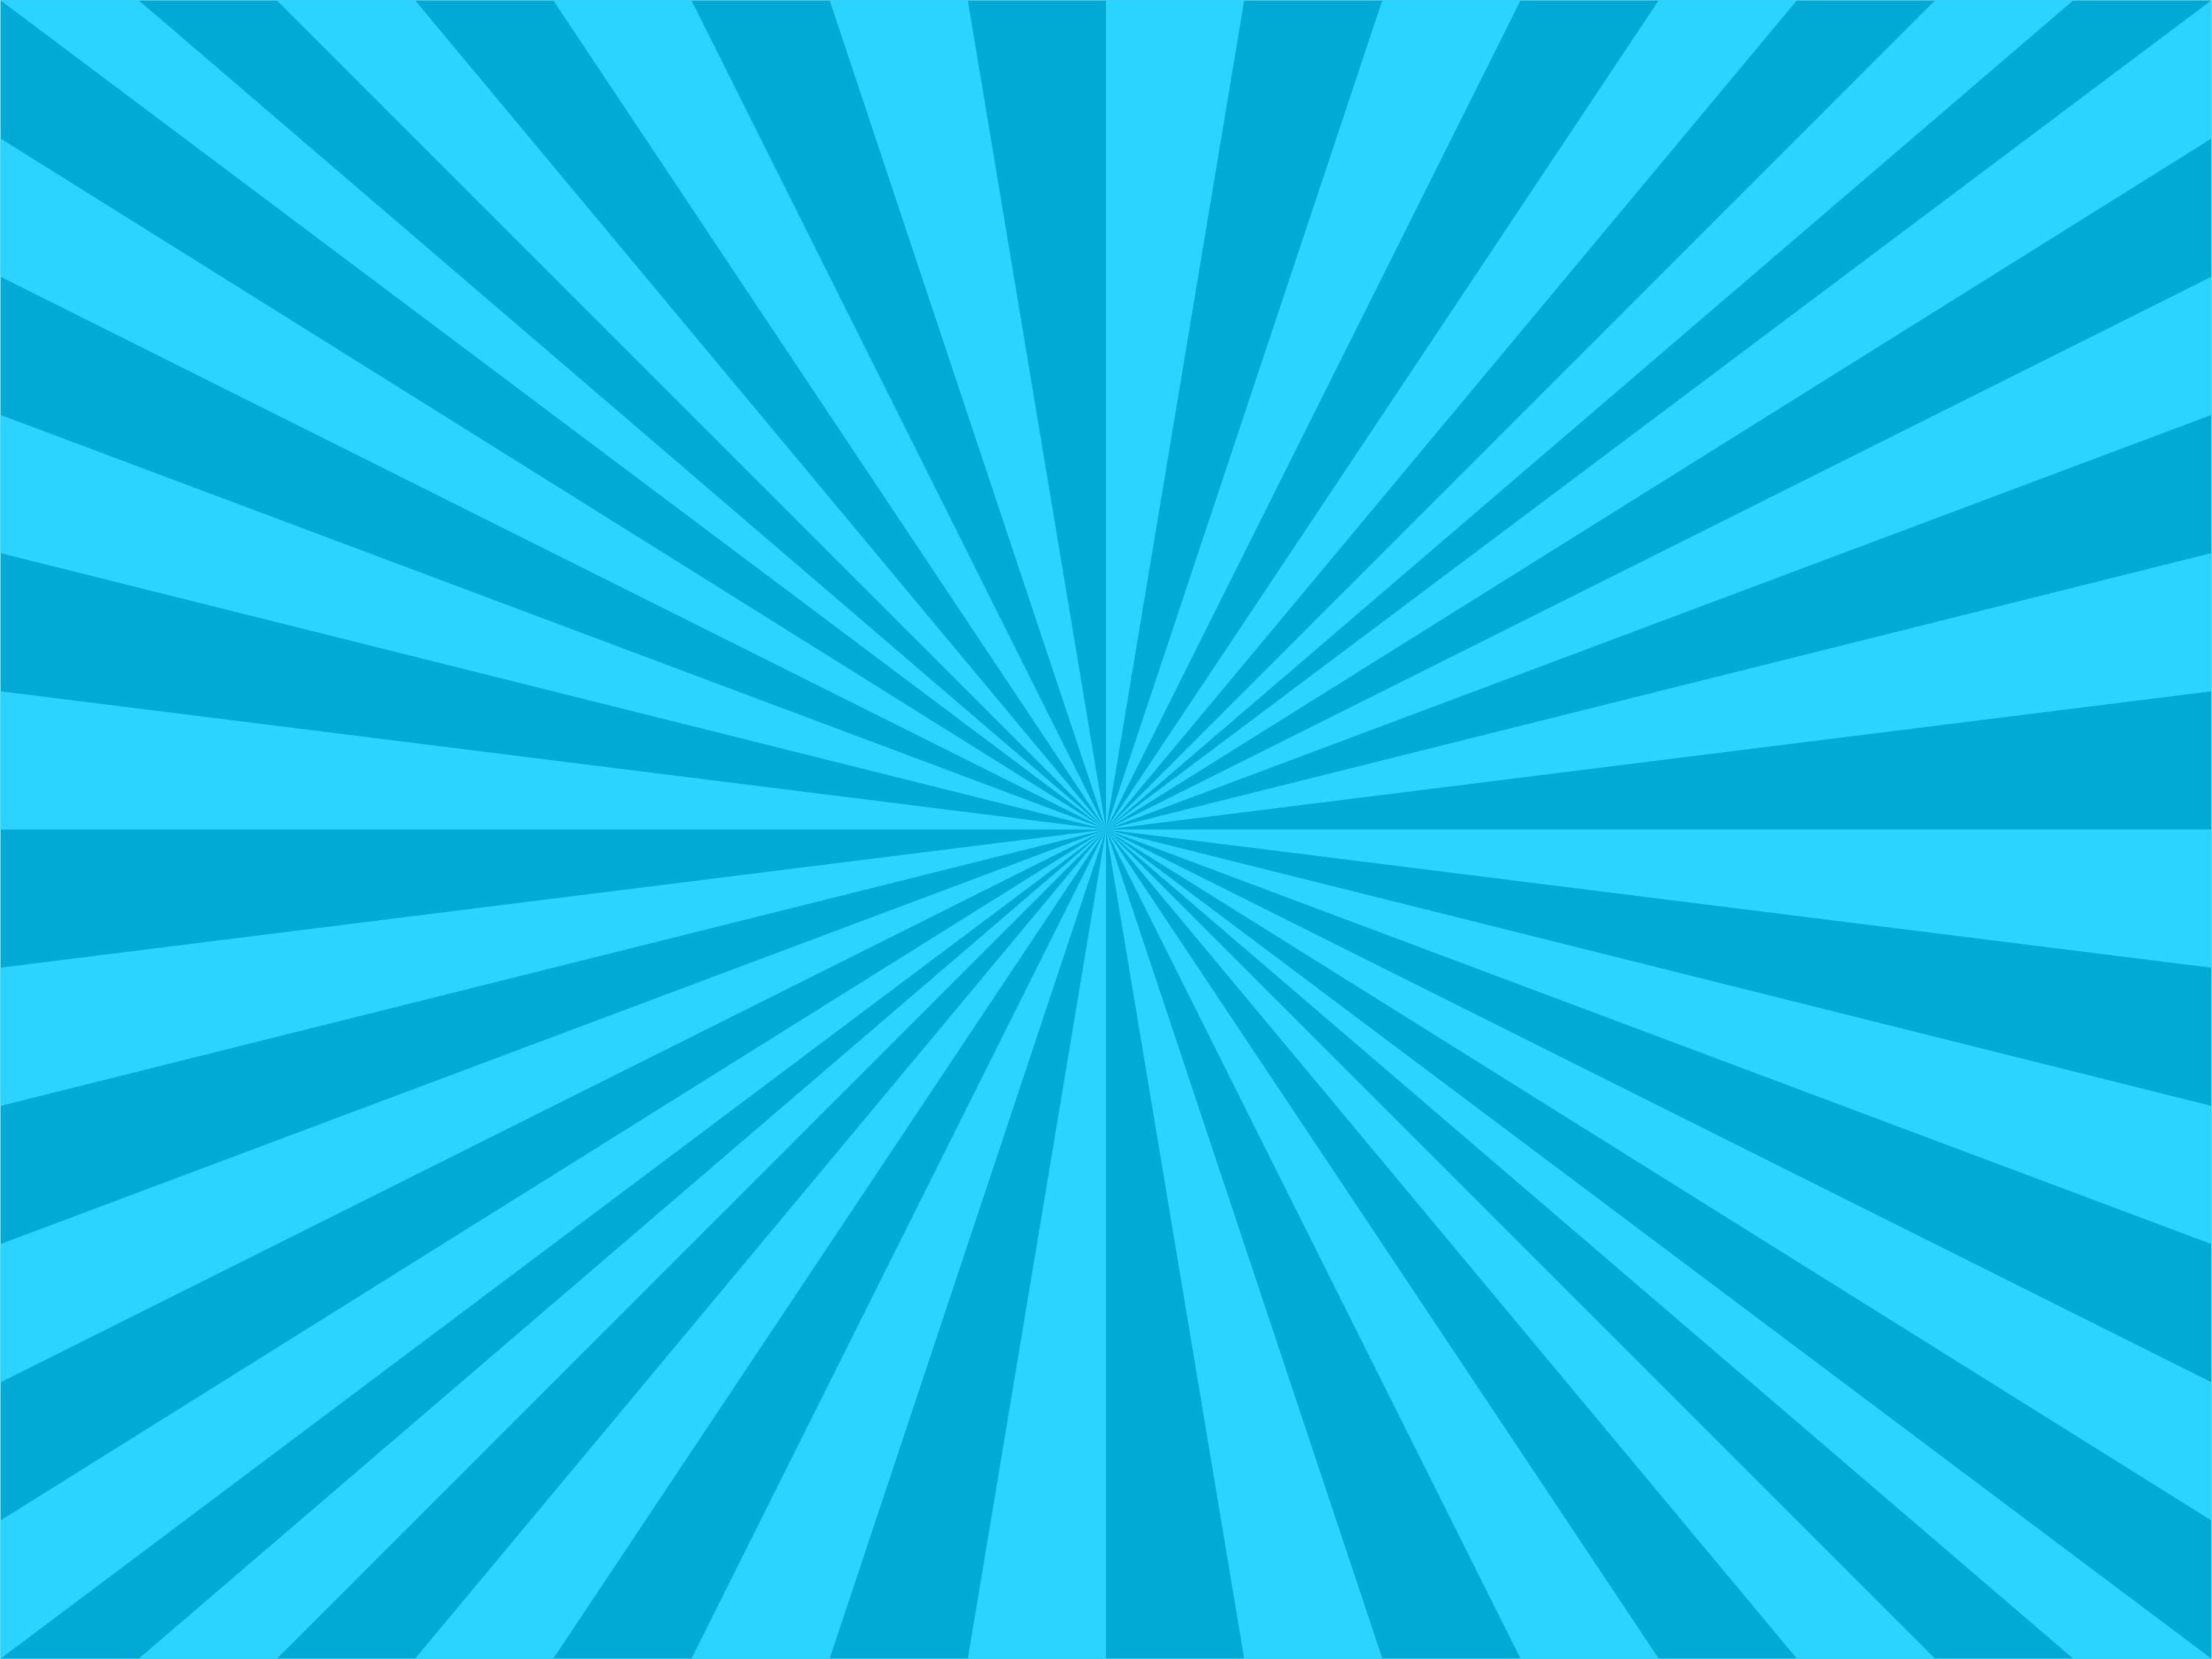 4 Burst Focus Abstract Background (PNG).